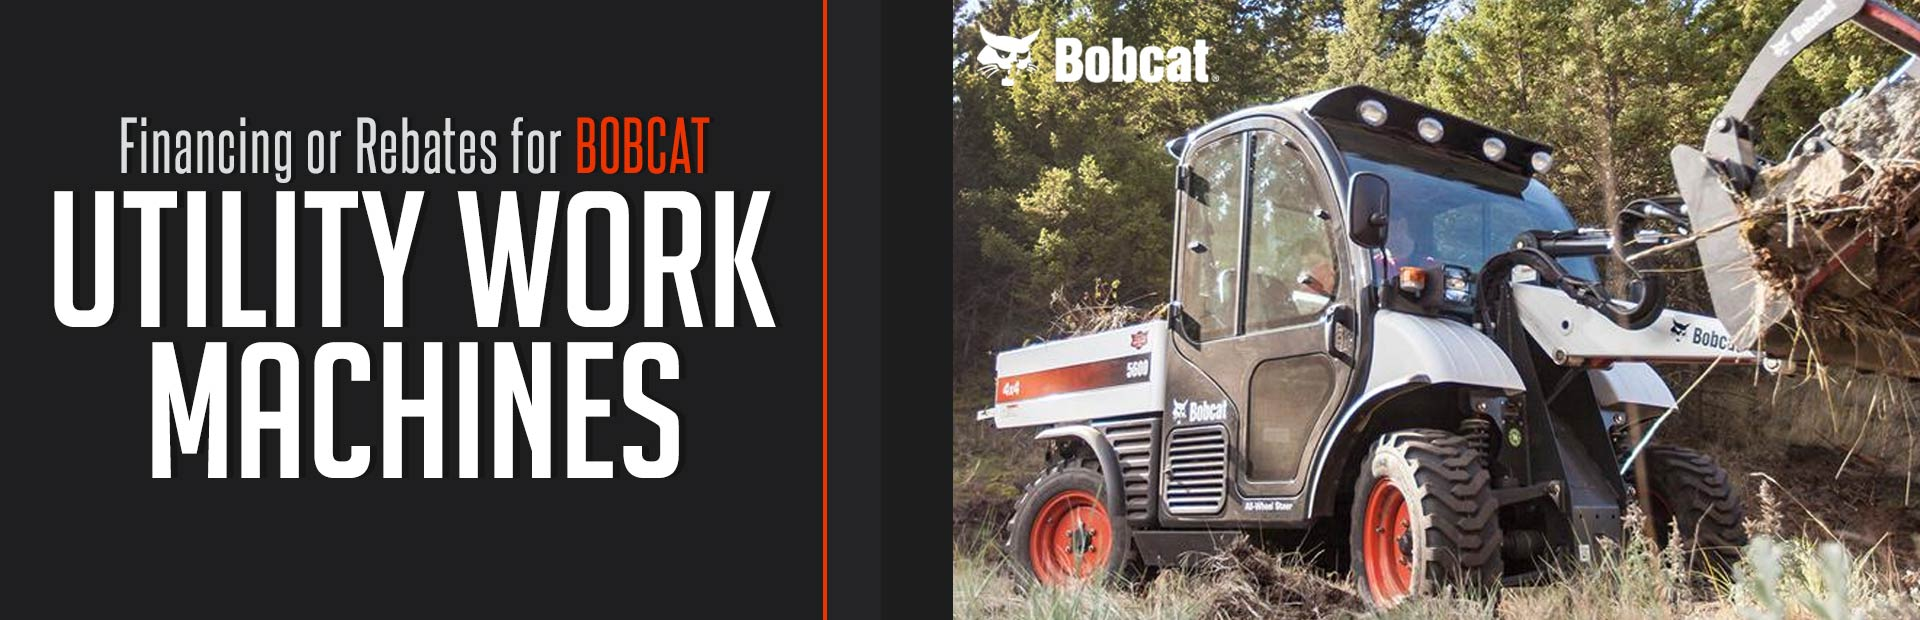 Bobcat: Financing or Rebates for Utility Work Machines